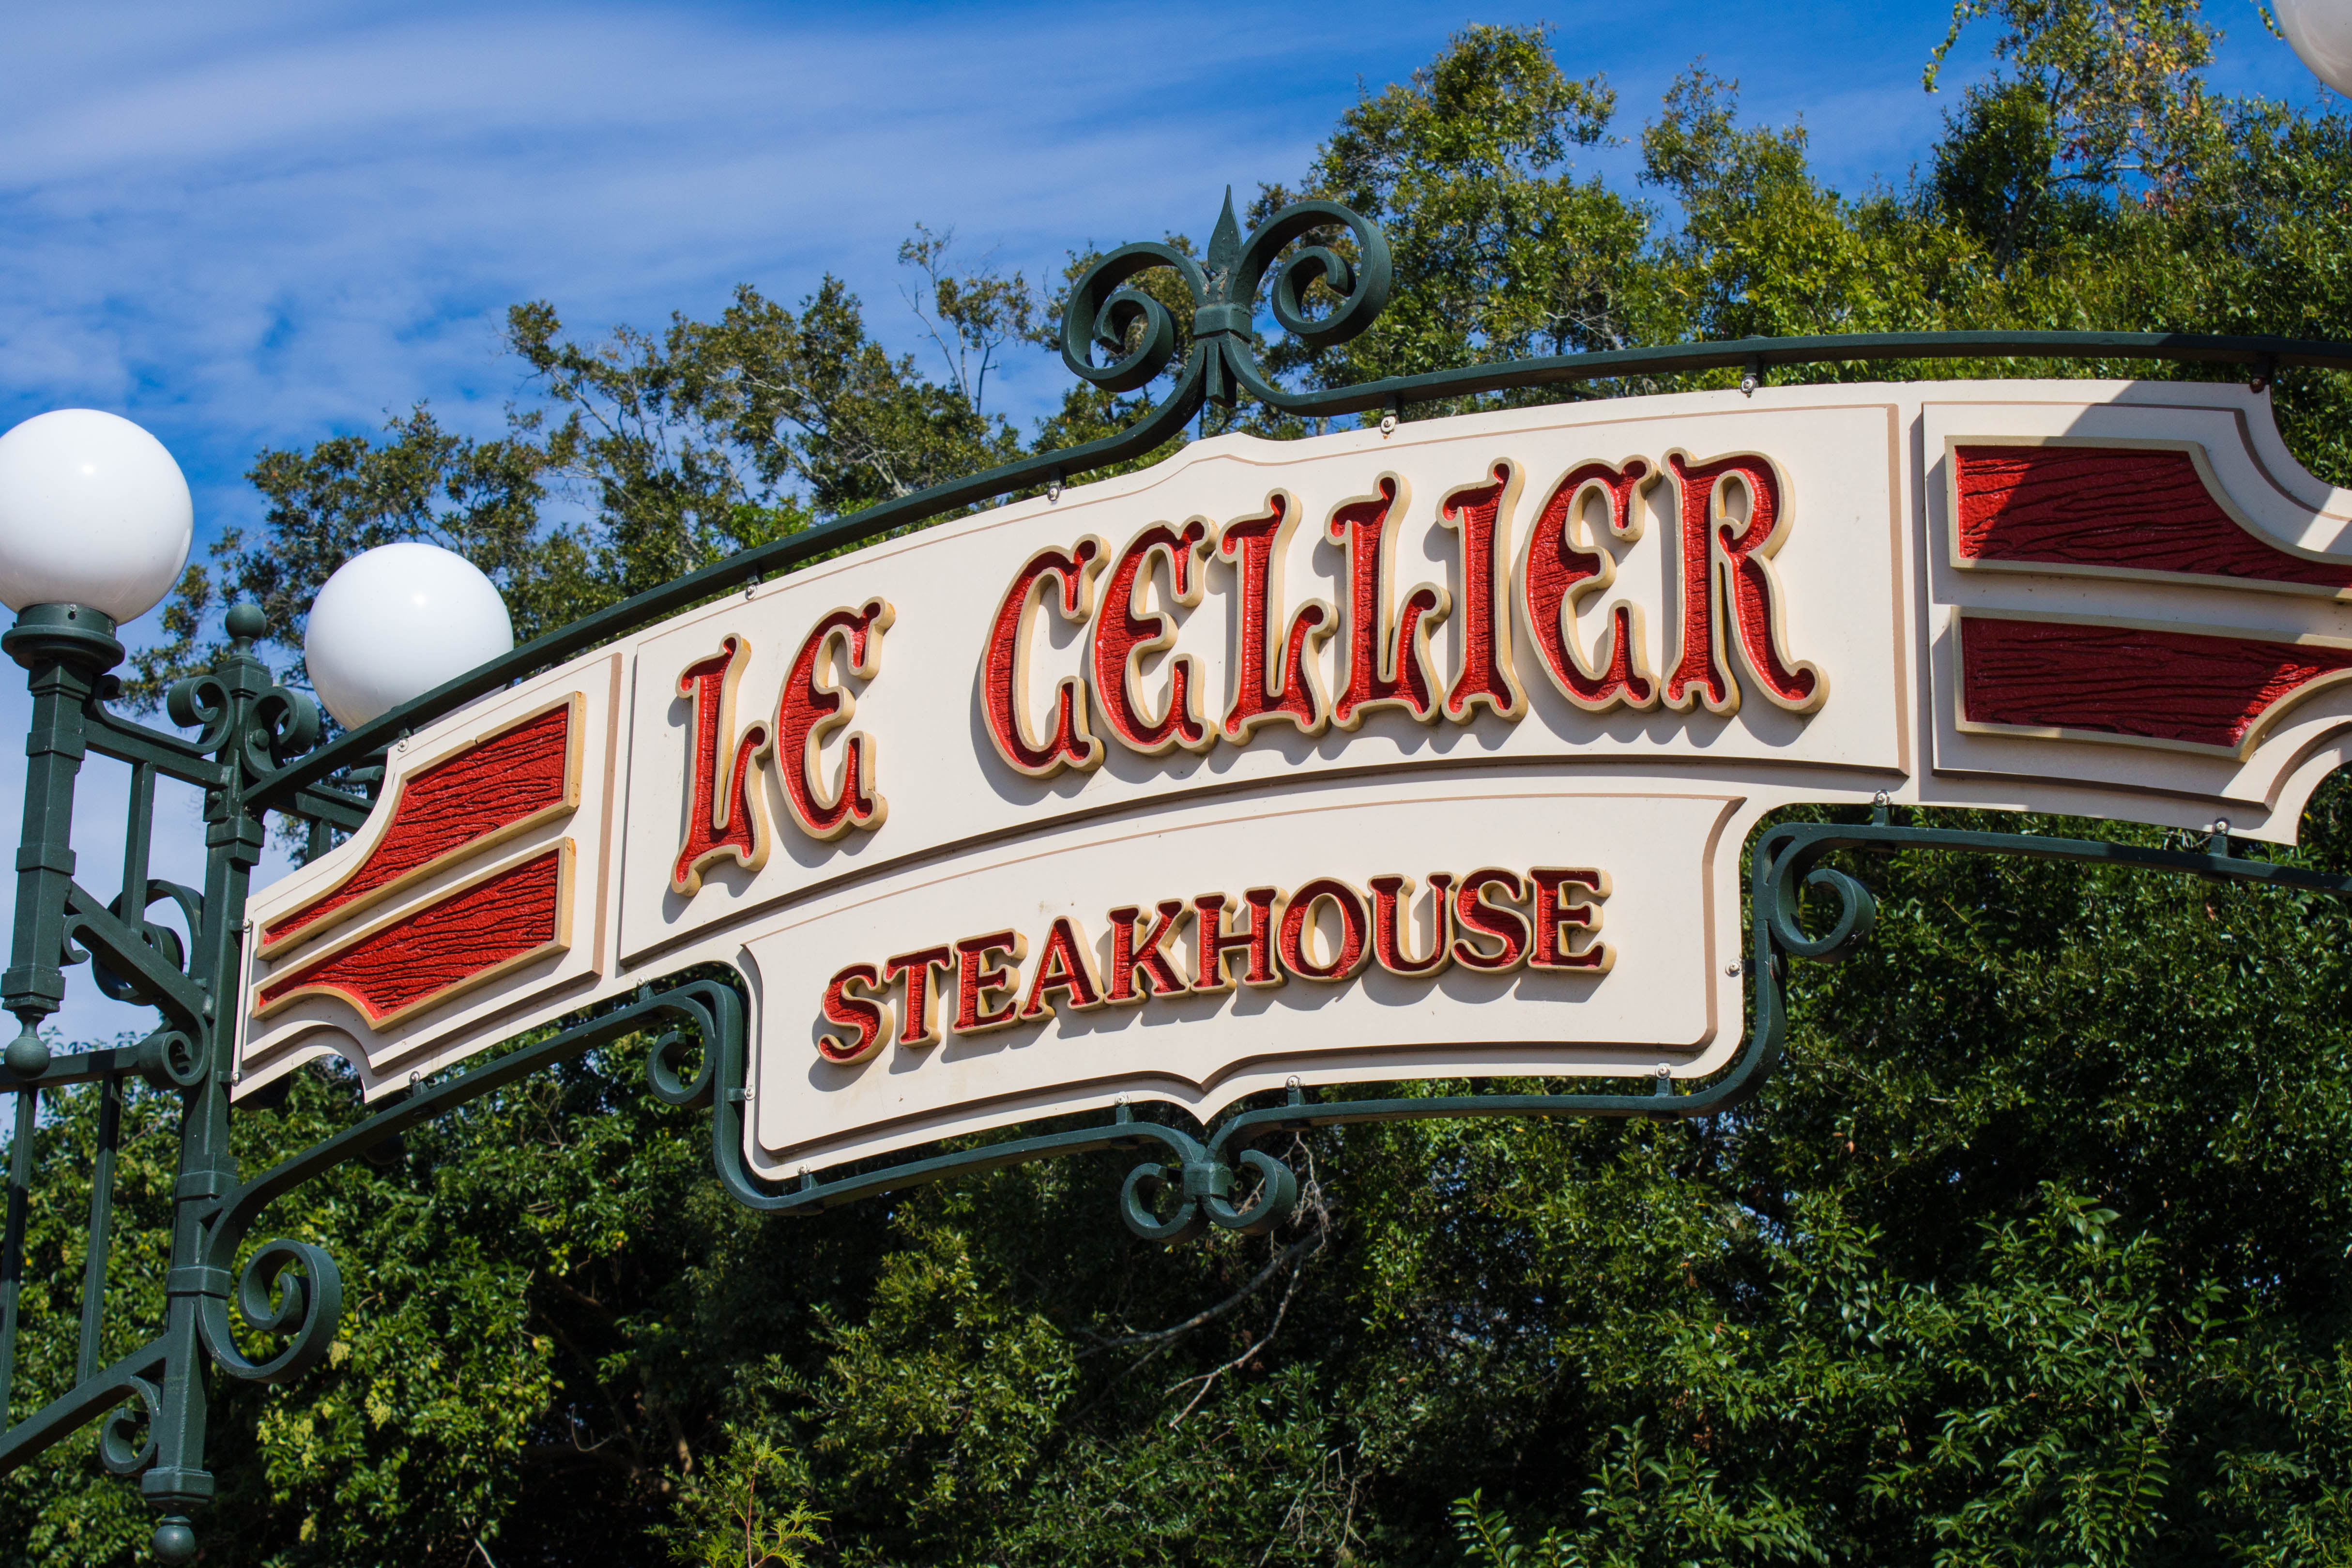 Le Cellier Steakhouse Sign